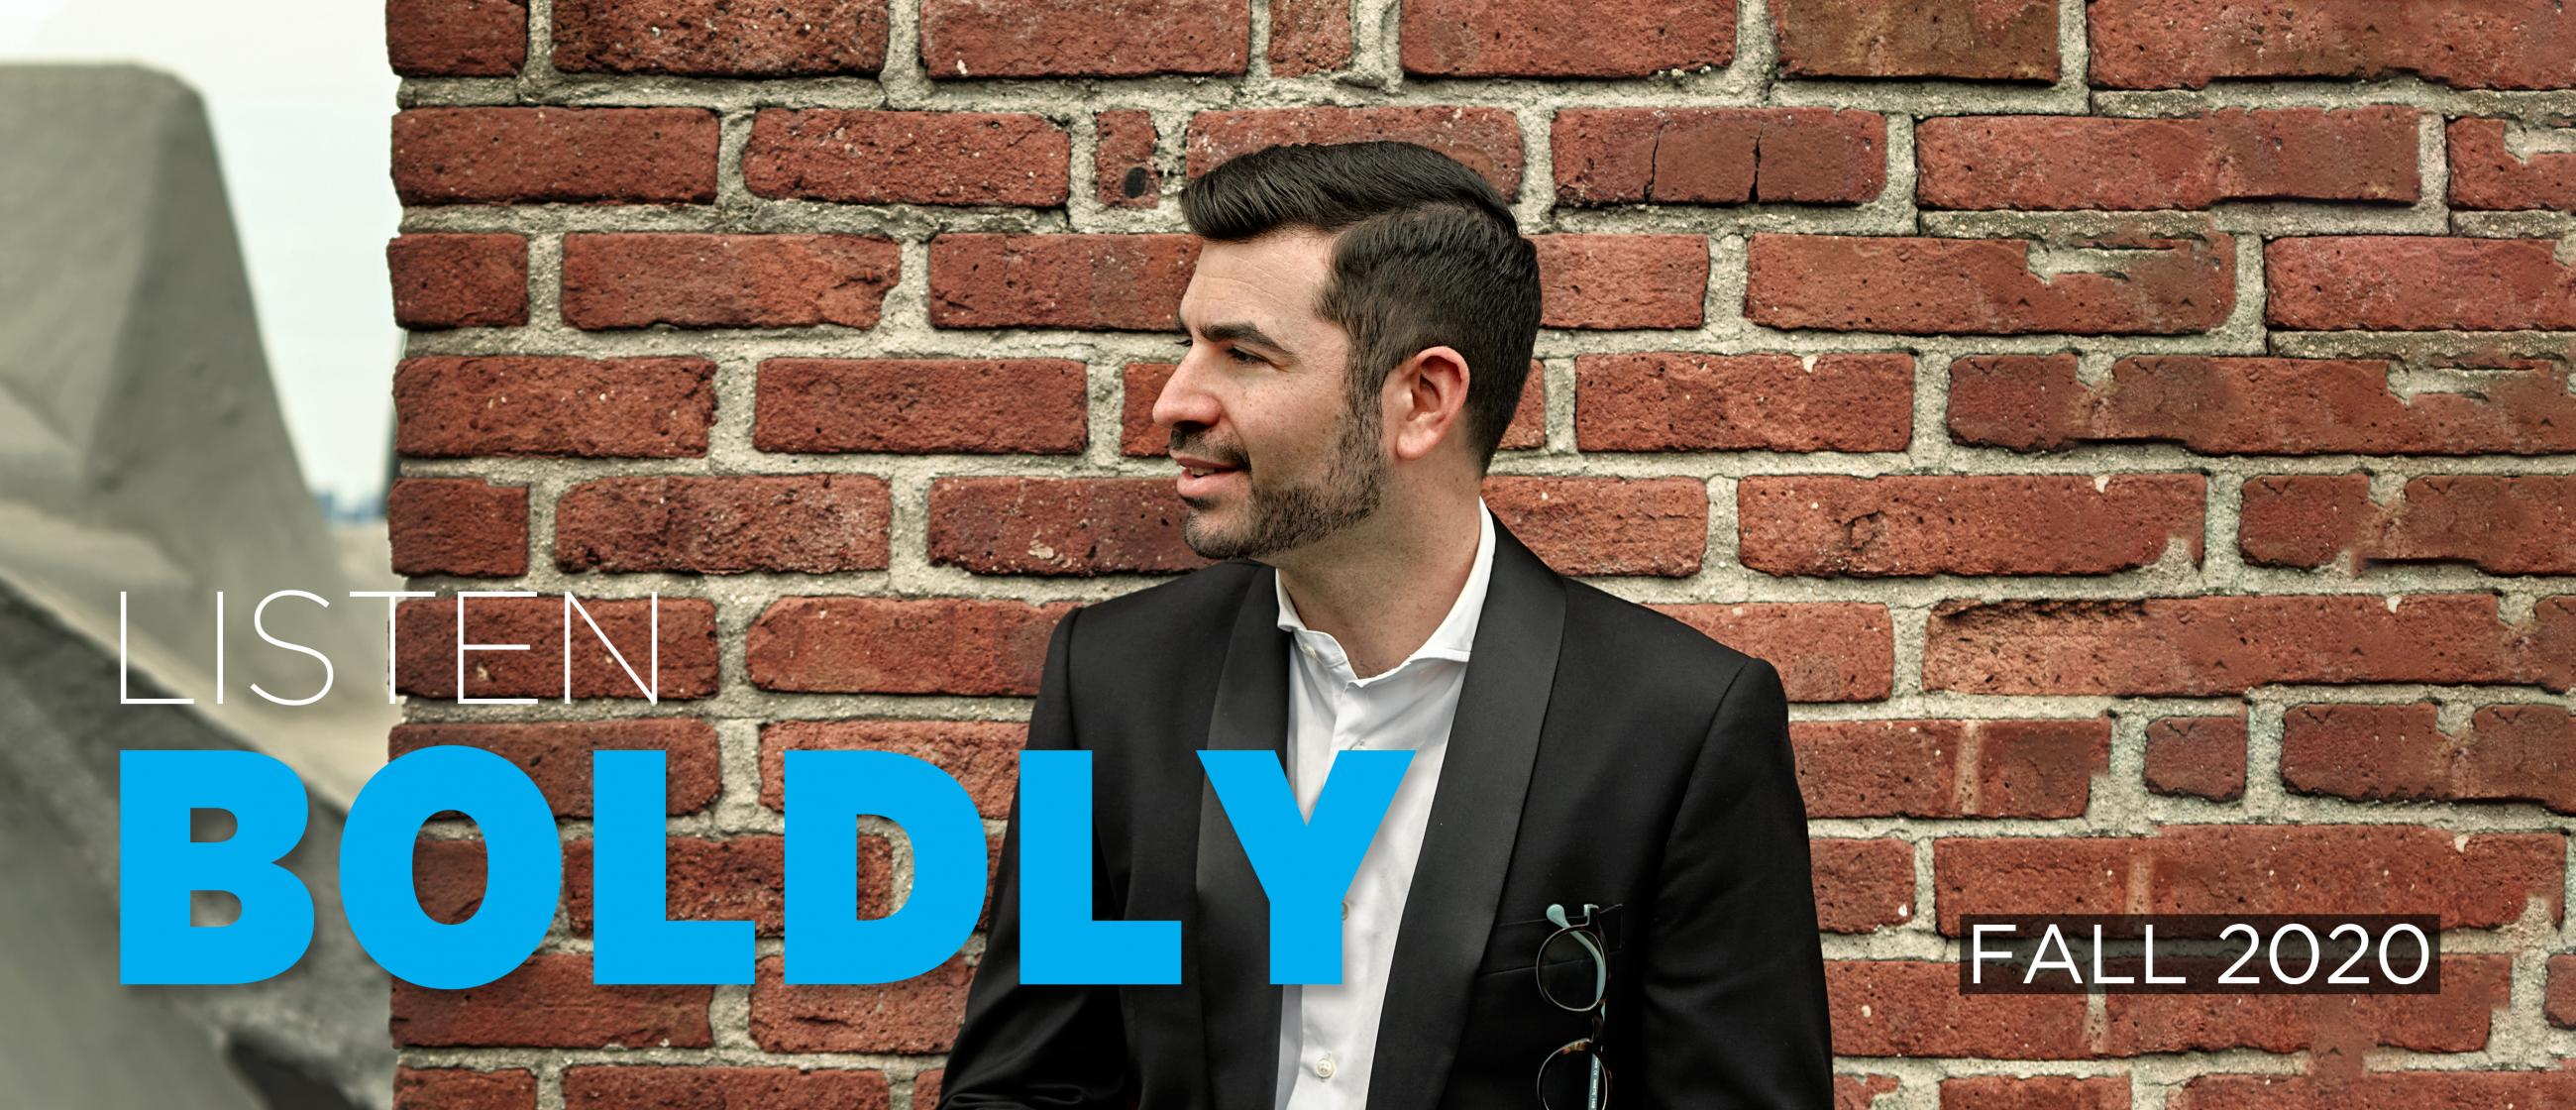 "Image of pianist Michael Brown standing in front of a brick wall with the text ""Listen Boldly"" and ""Fall 2020"""